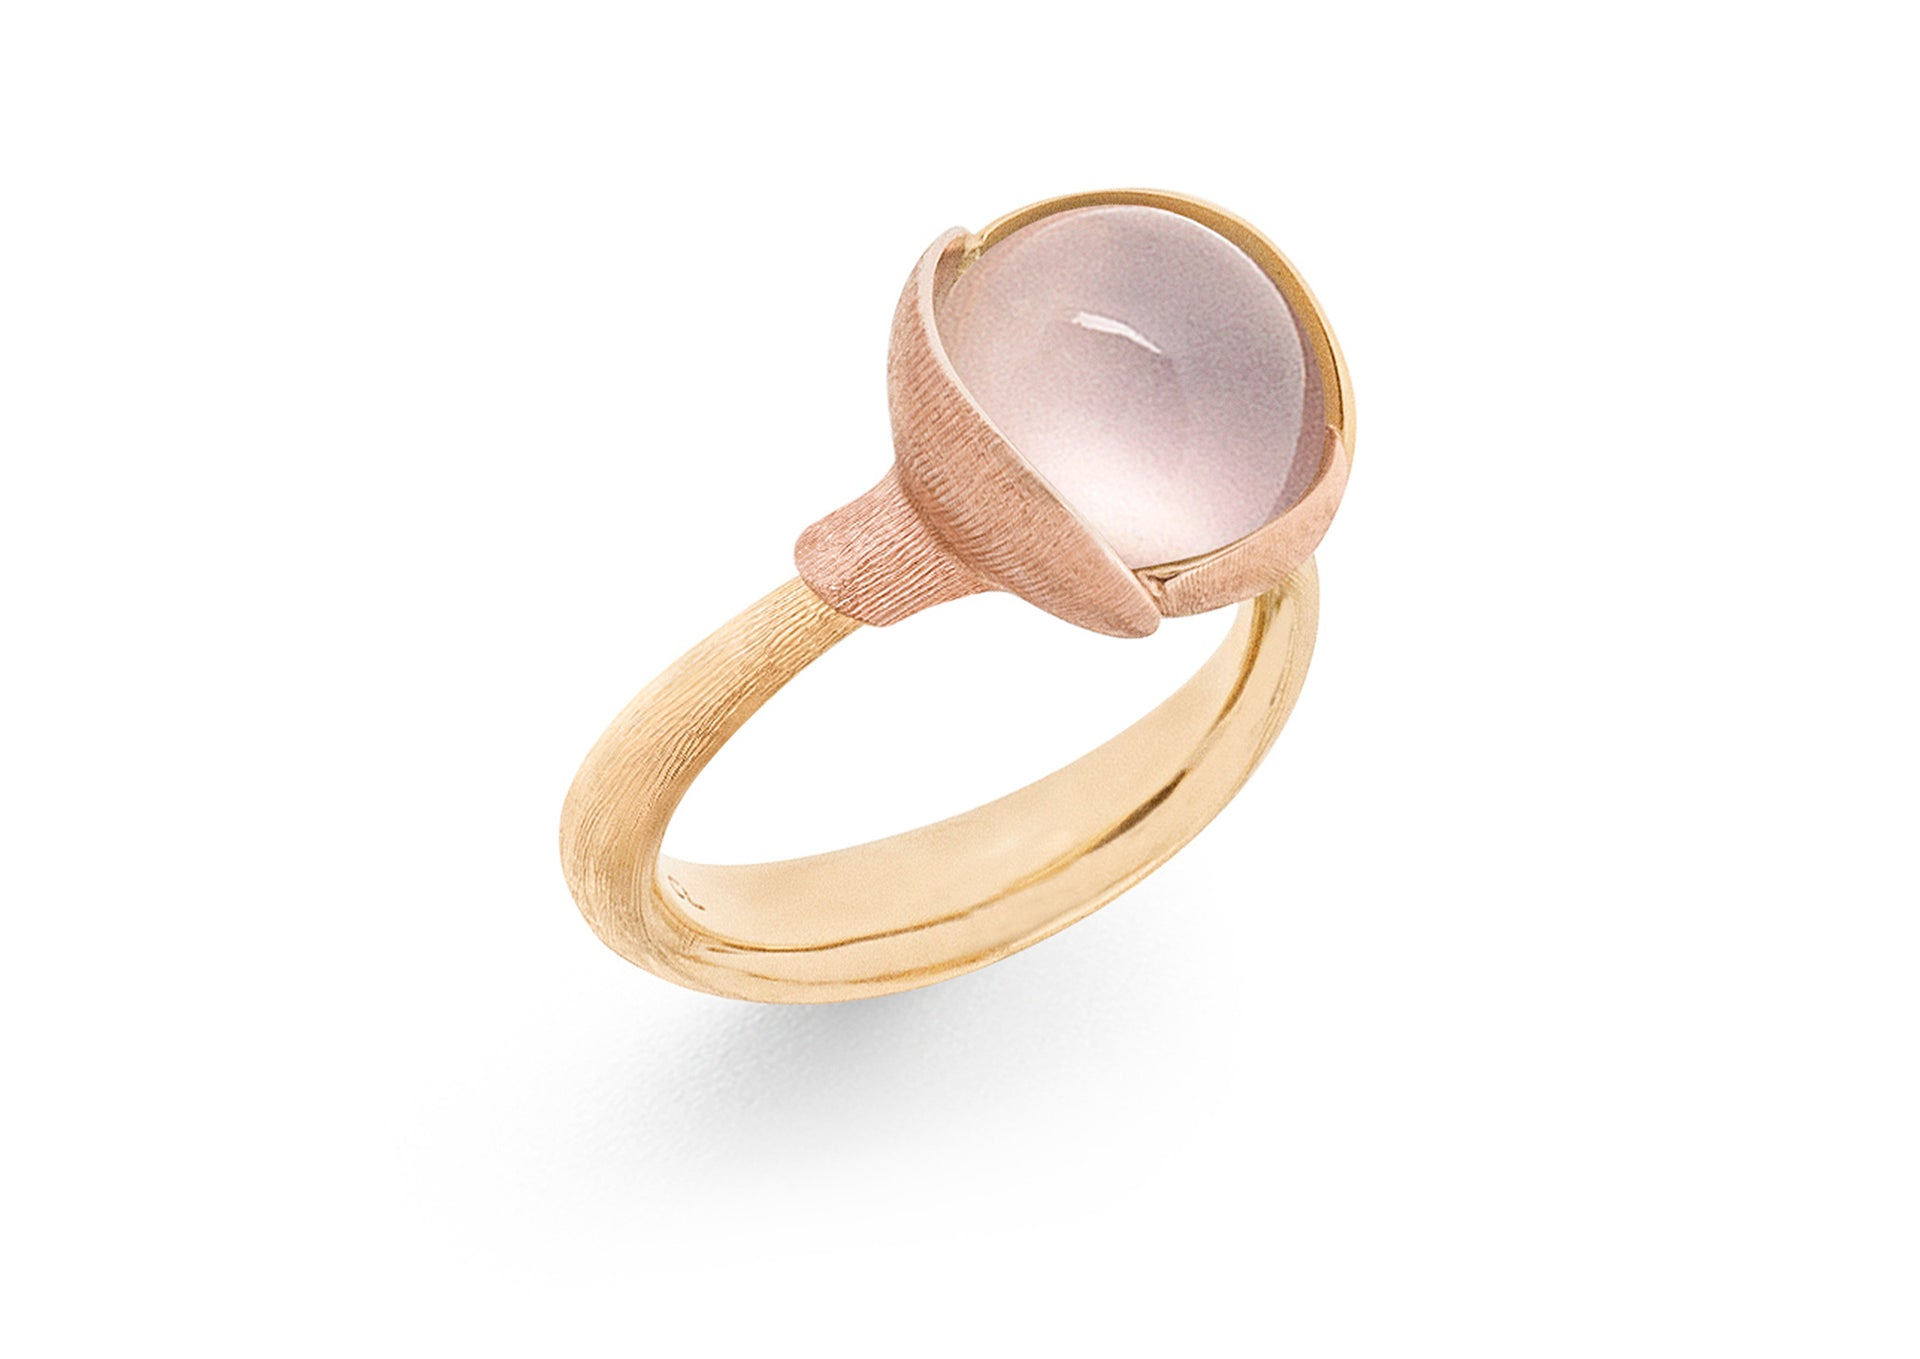 Lotus Ring in 18ct Yellow Gold with Rose Quartz